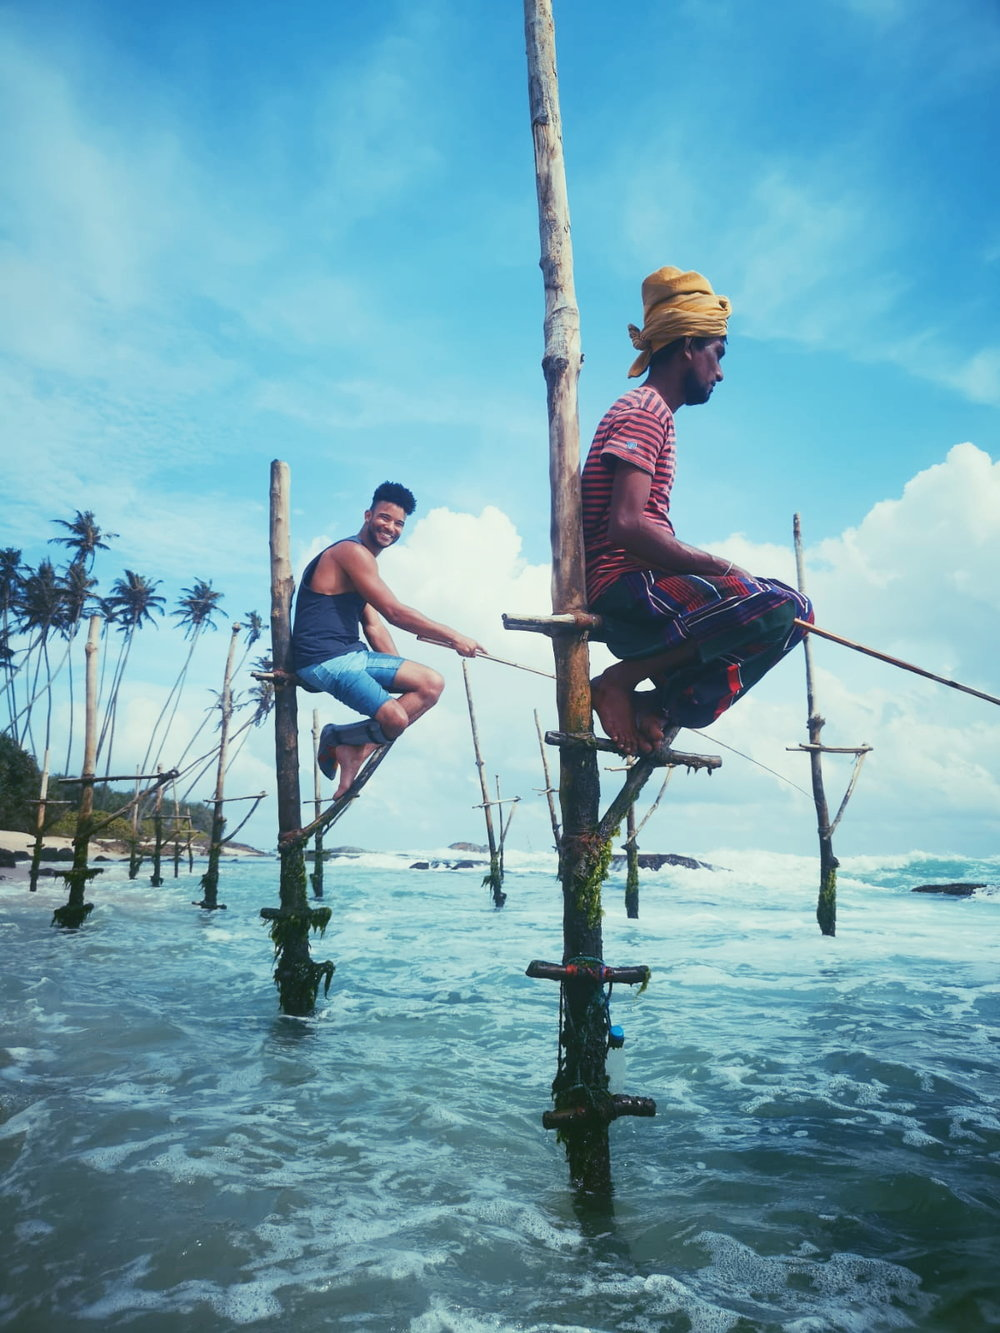 invite-to-paradise-sri-lanka-holiday-honeymoon-specialists-customer-feedback-elin-jordan-luce-stilt-fisherman-fishing-try.JPG